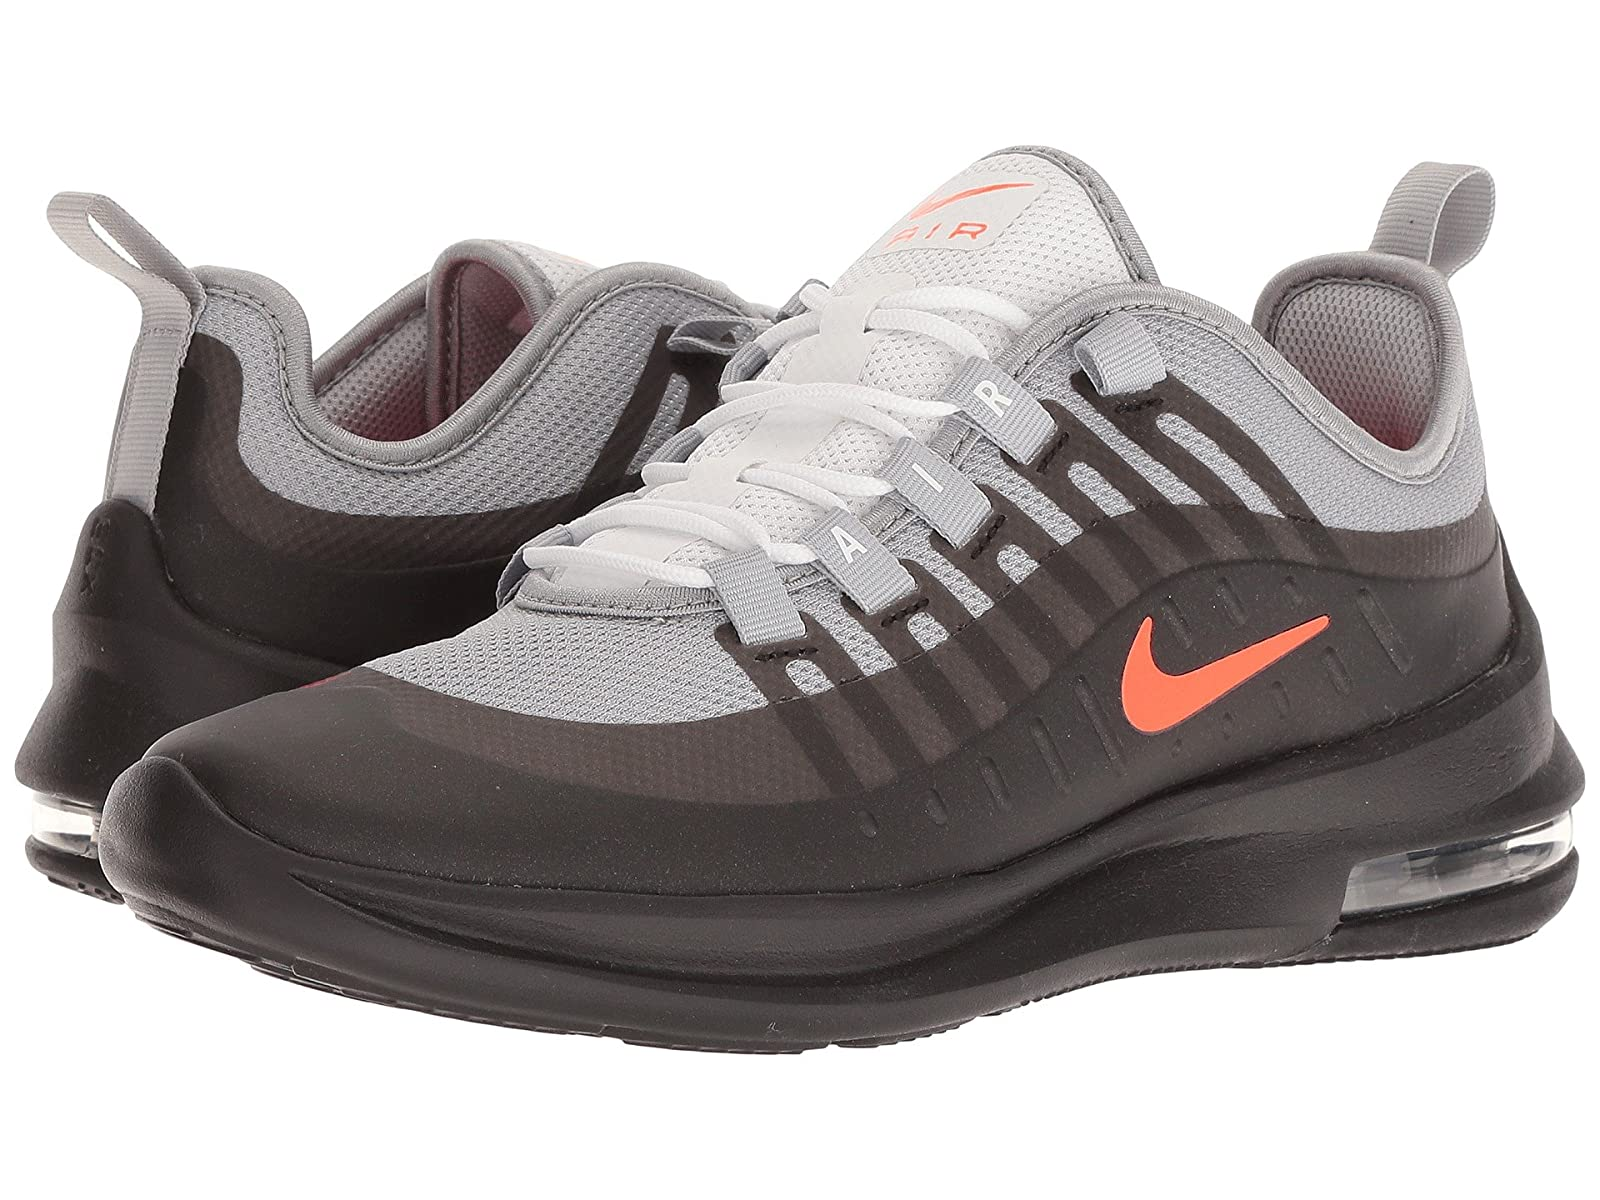 Nike Kids Air Max Axis (Big Kid)Atmospheric grades have affordable shoes